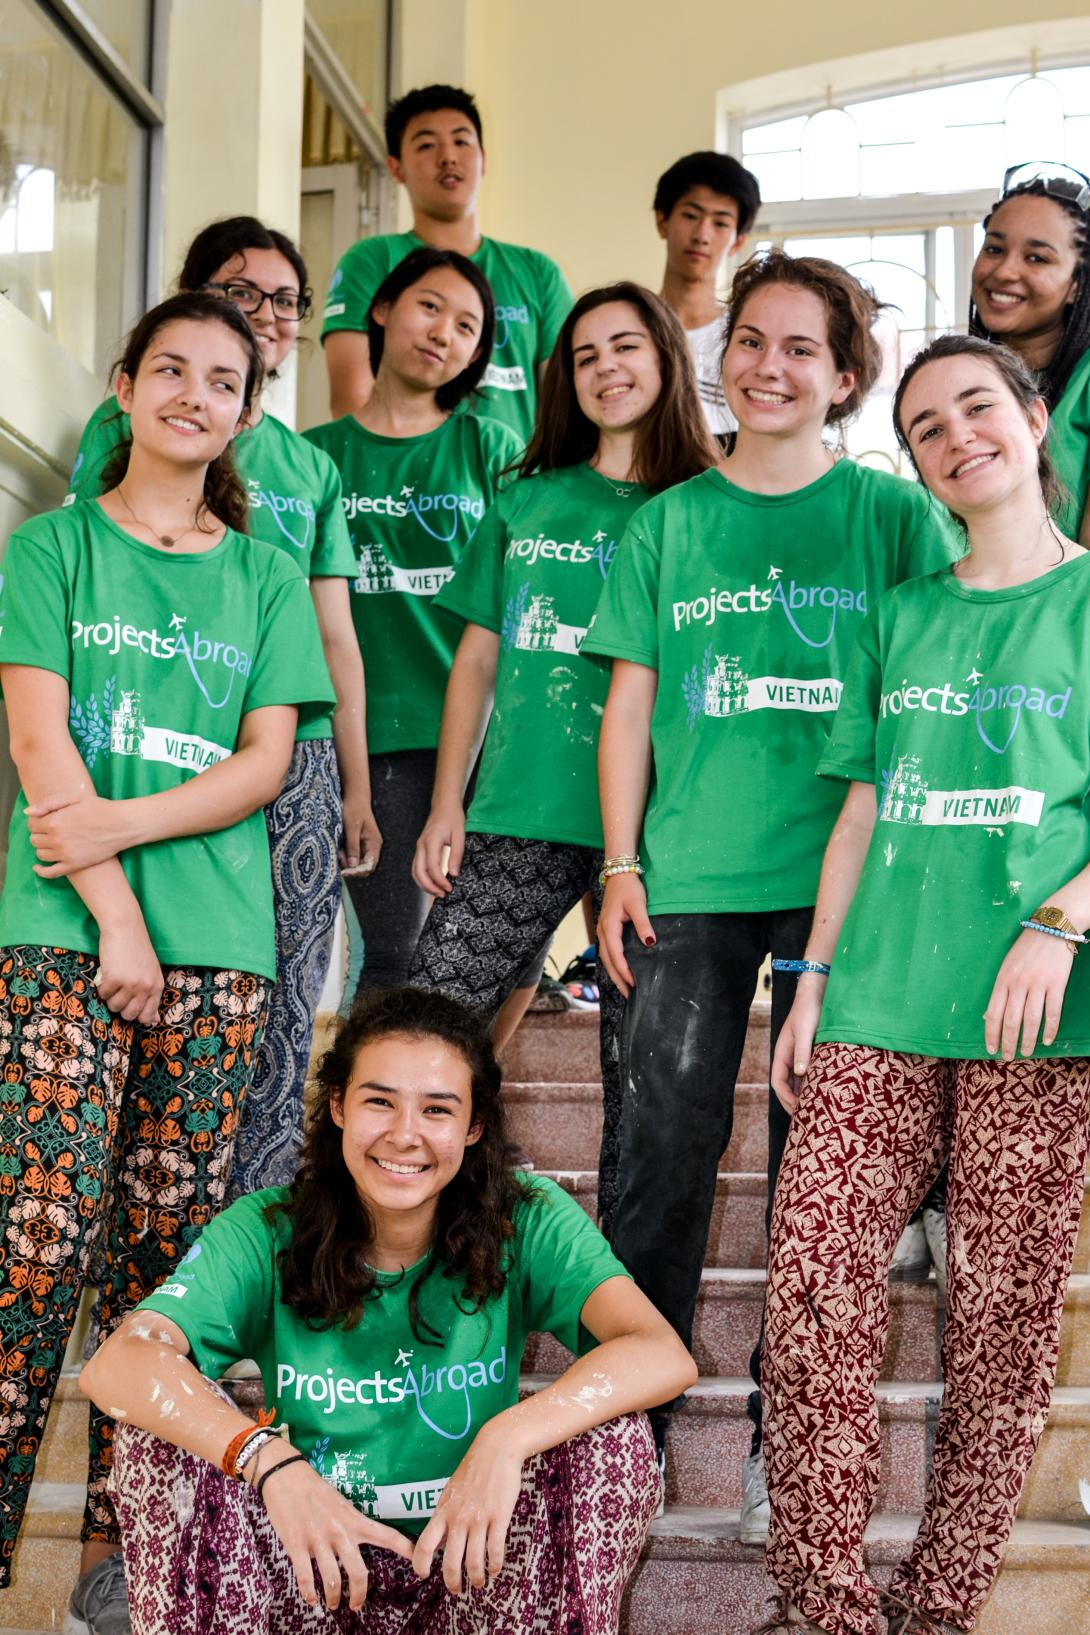 An international group of Projects Abroad volunteers take a break during their high school special project.